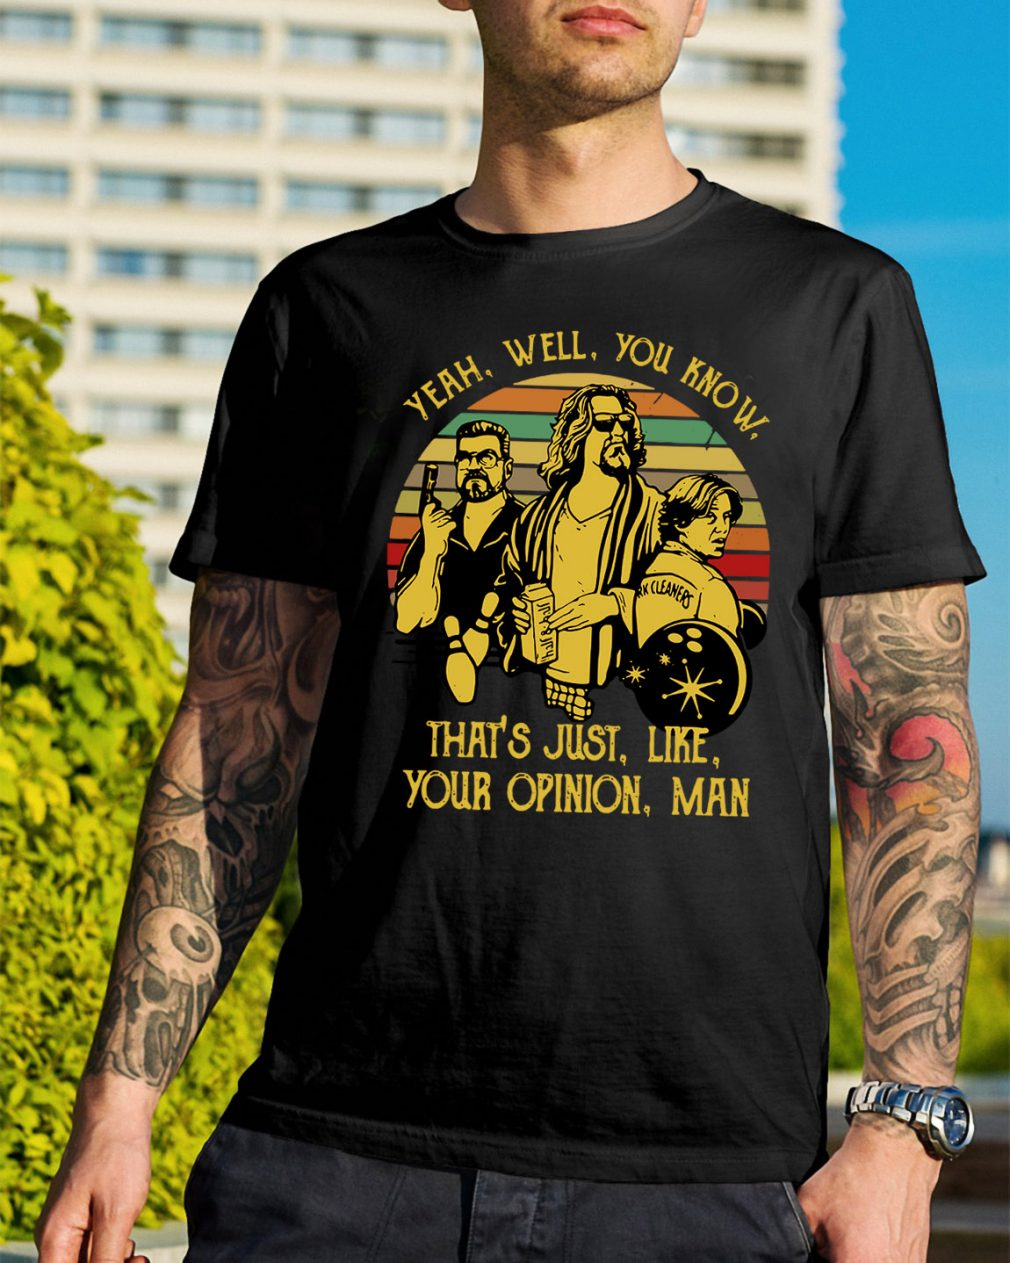 The Big Lebowski The Dude Yeah well you know that's just like your shirt